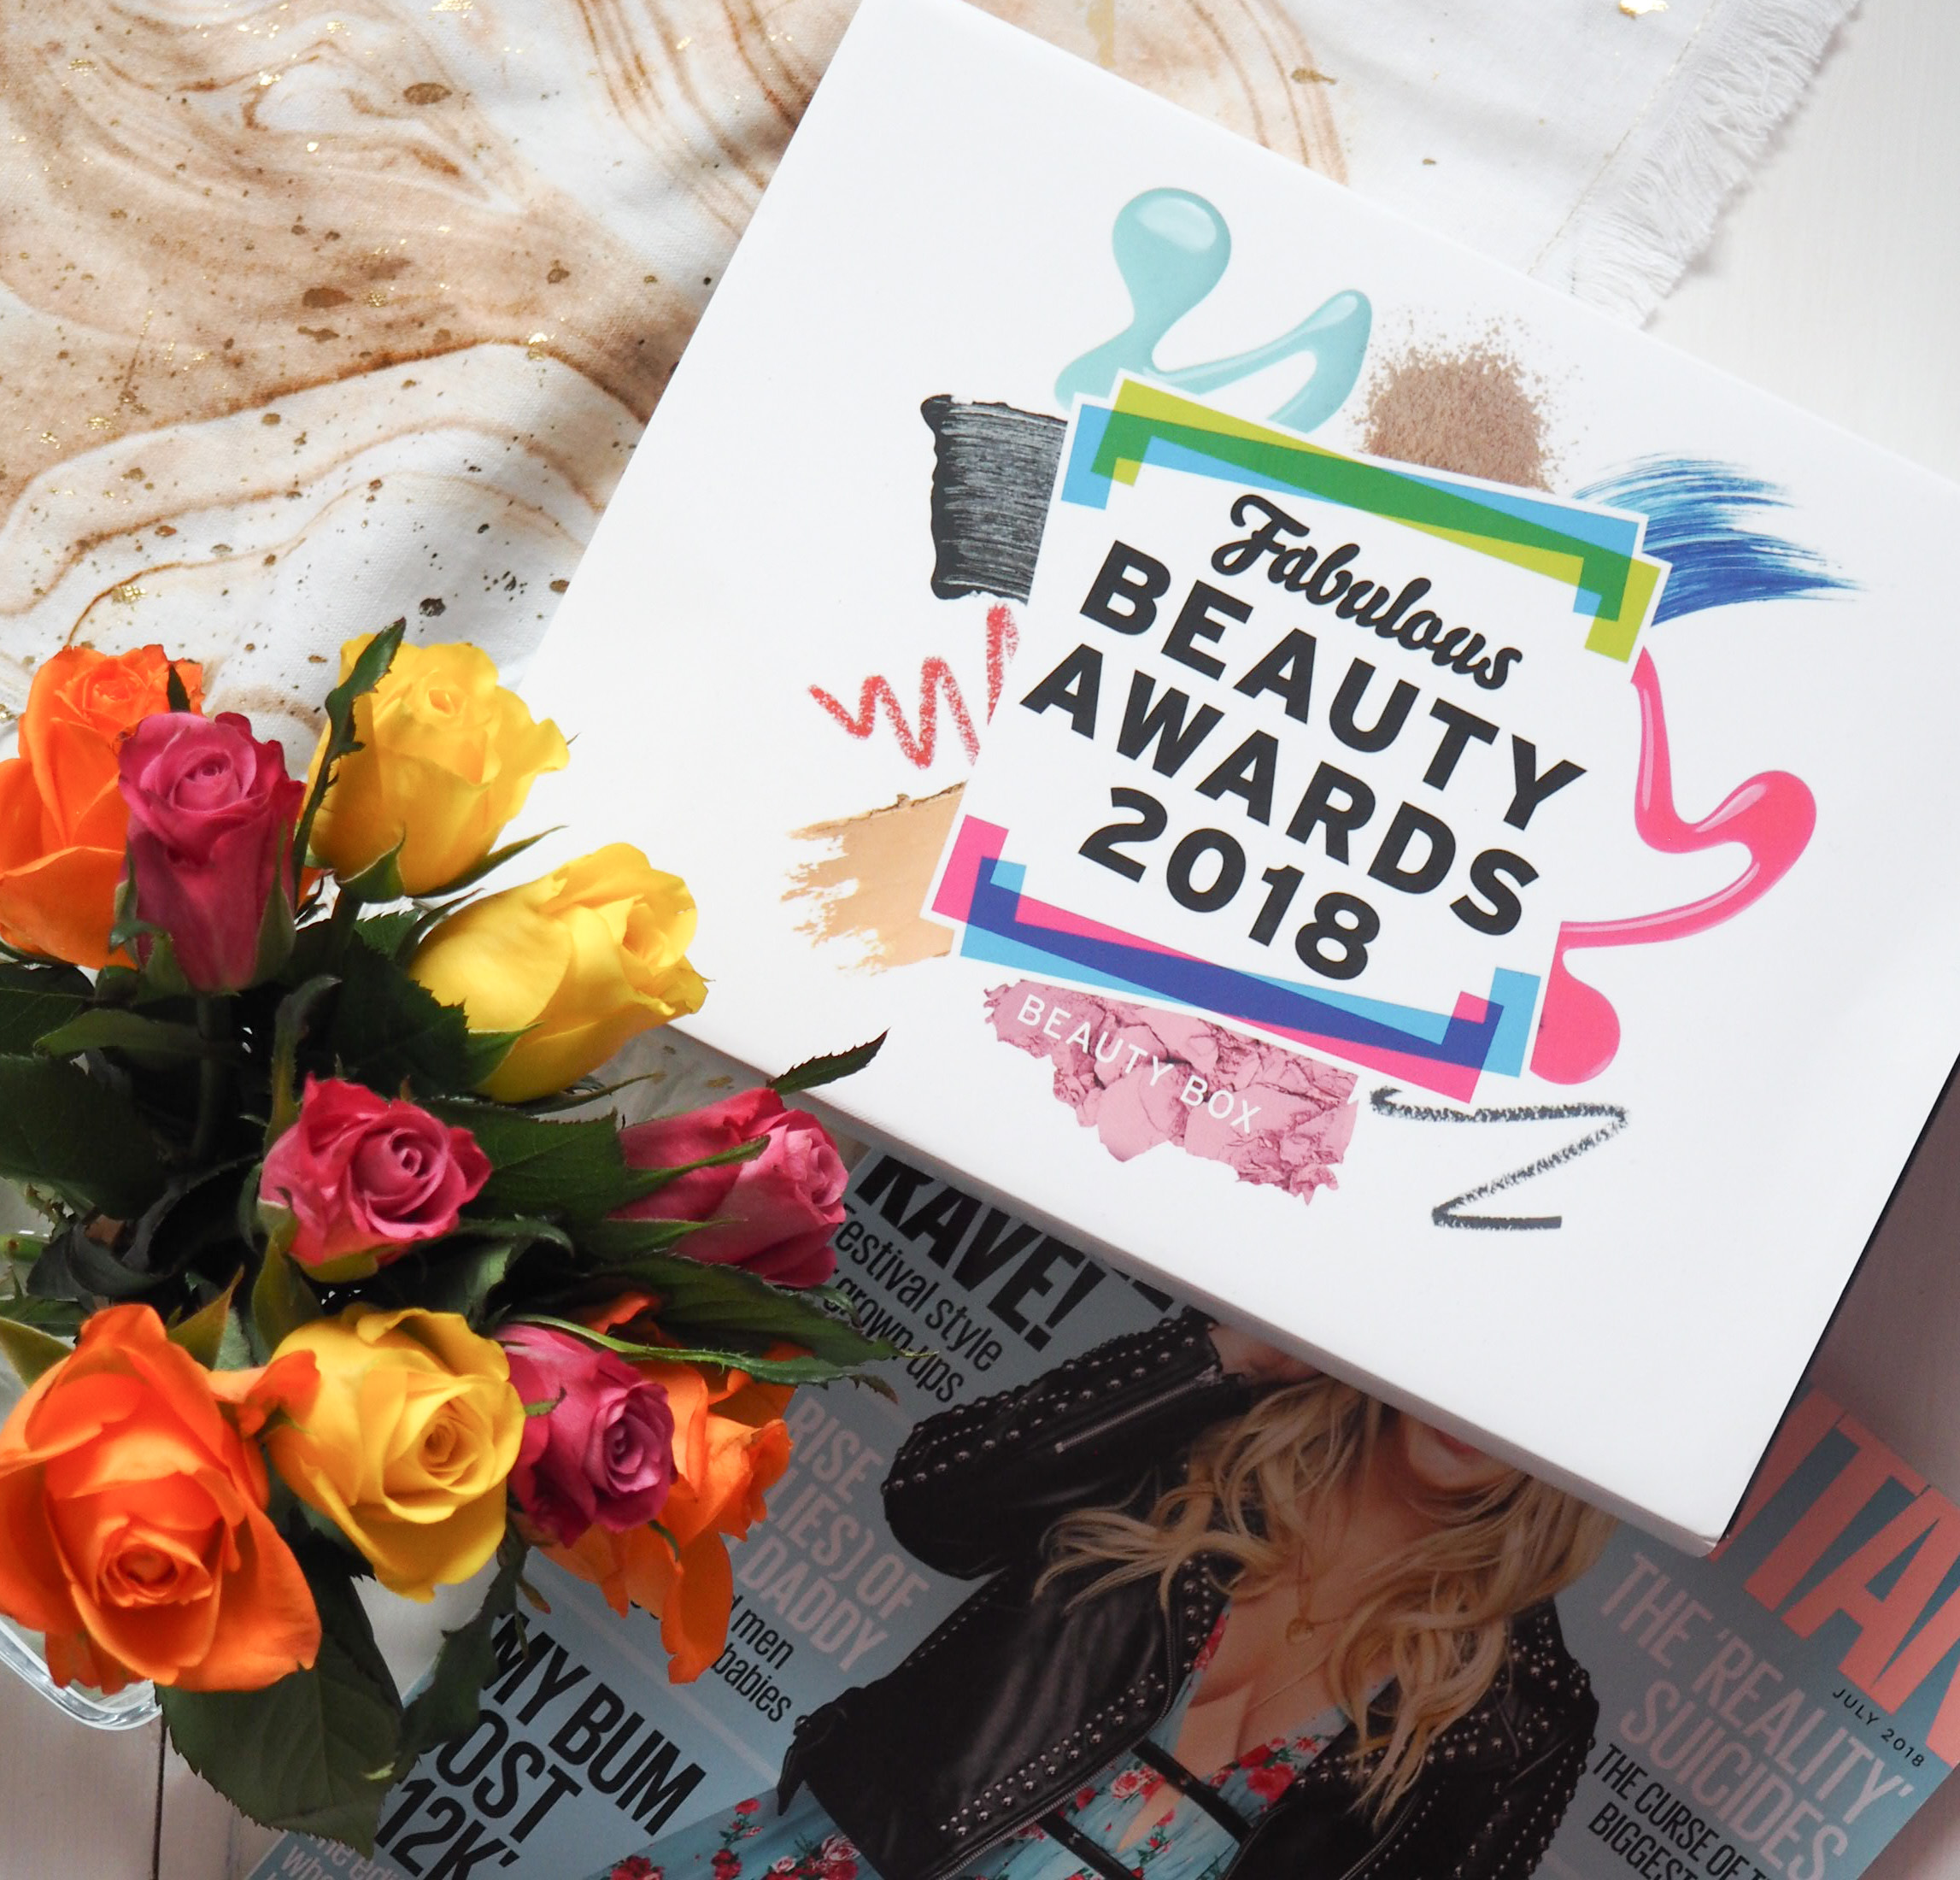 Fabulous Beauty Awards 2018 Beauty Box from Latest in Beauty 1.jpg